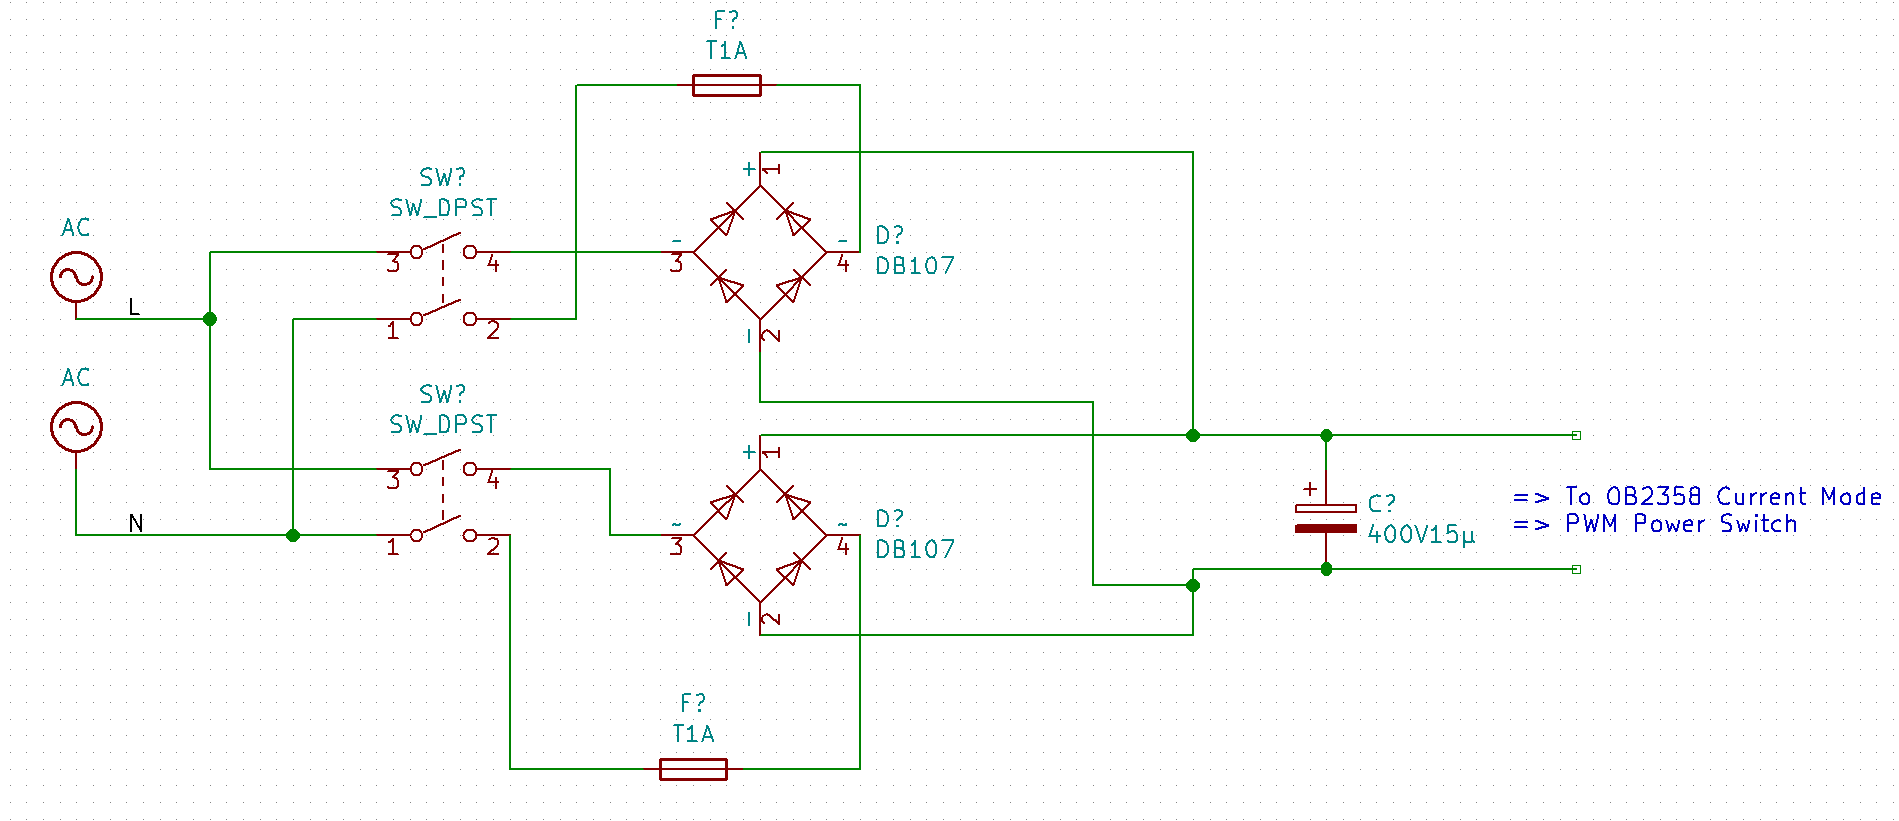 Flowerpower Led Growlight Powerlight 400w Repair P8 Wan Hung Lo Further Motor Wiring Diagram Furthermore Half Wave Rectifier Circuit Heres A Crude Sketch Of The Important Part Until It Goes Into More Standard Circuits For Driving Switching Power Supply Itself